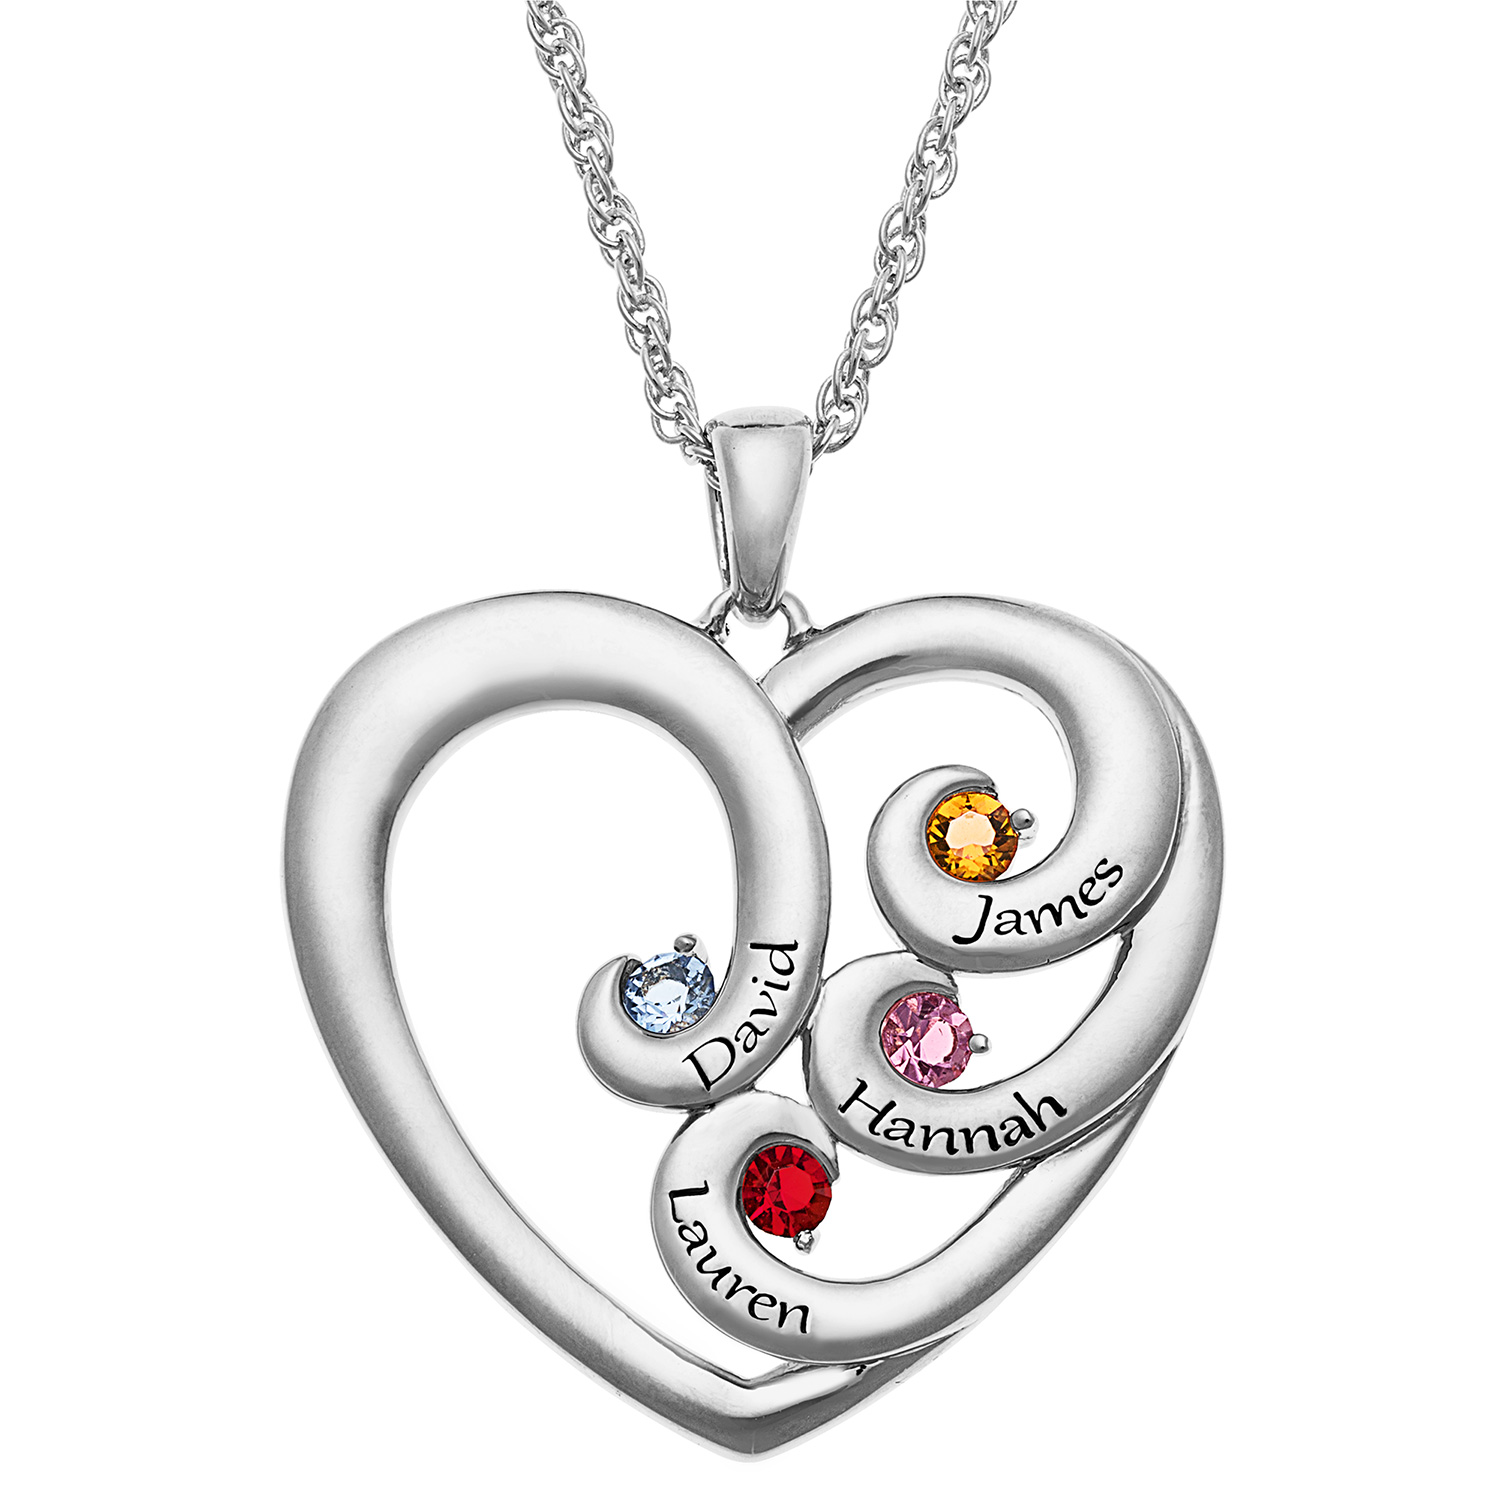 Family Jewelry Personalized Mother's Engraved Heart Silvertone or Goldtone Birthstone Necklace